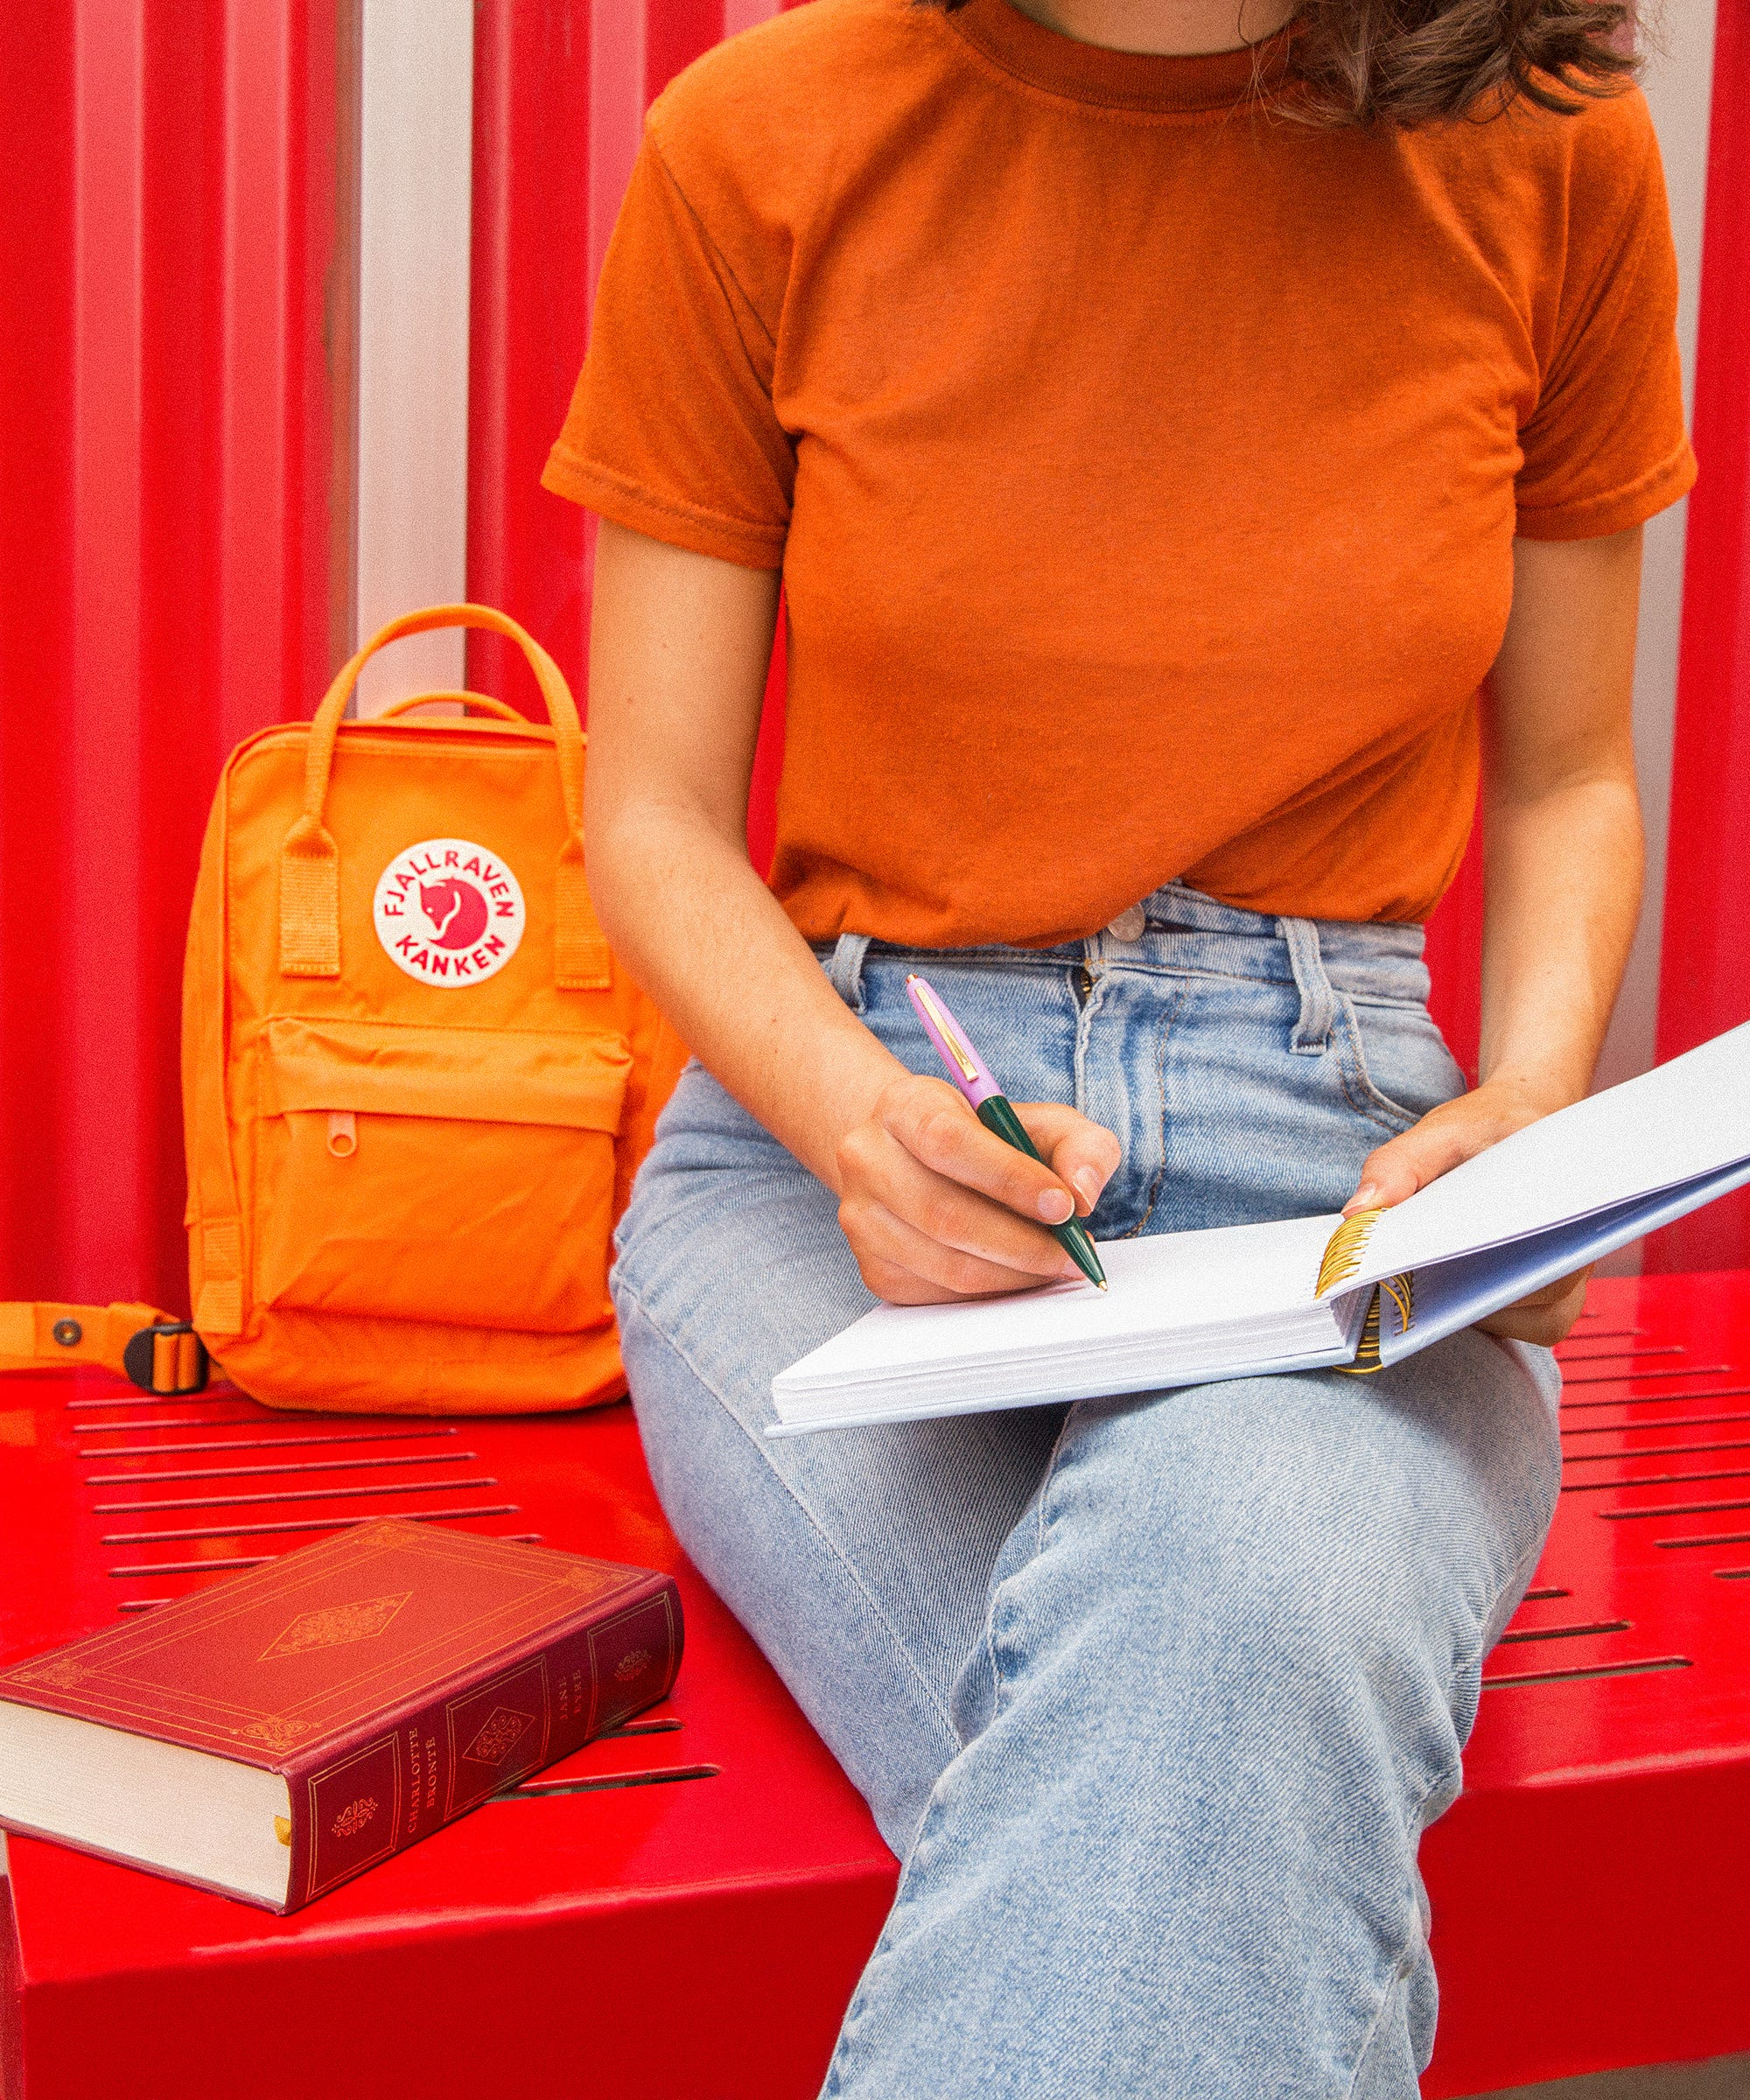 Apps & Gadgets To Help You Survive Freshman Year, According To Actual College Students